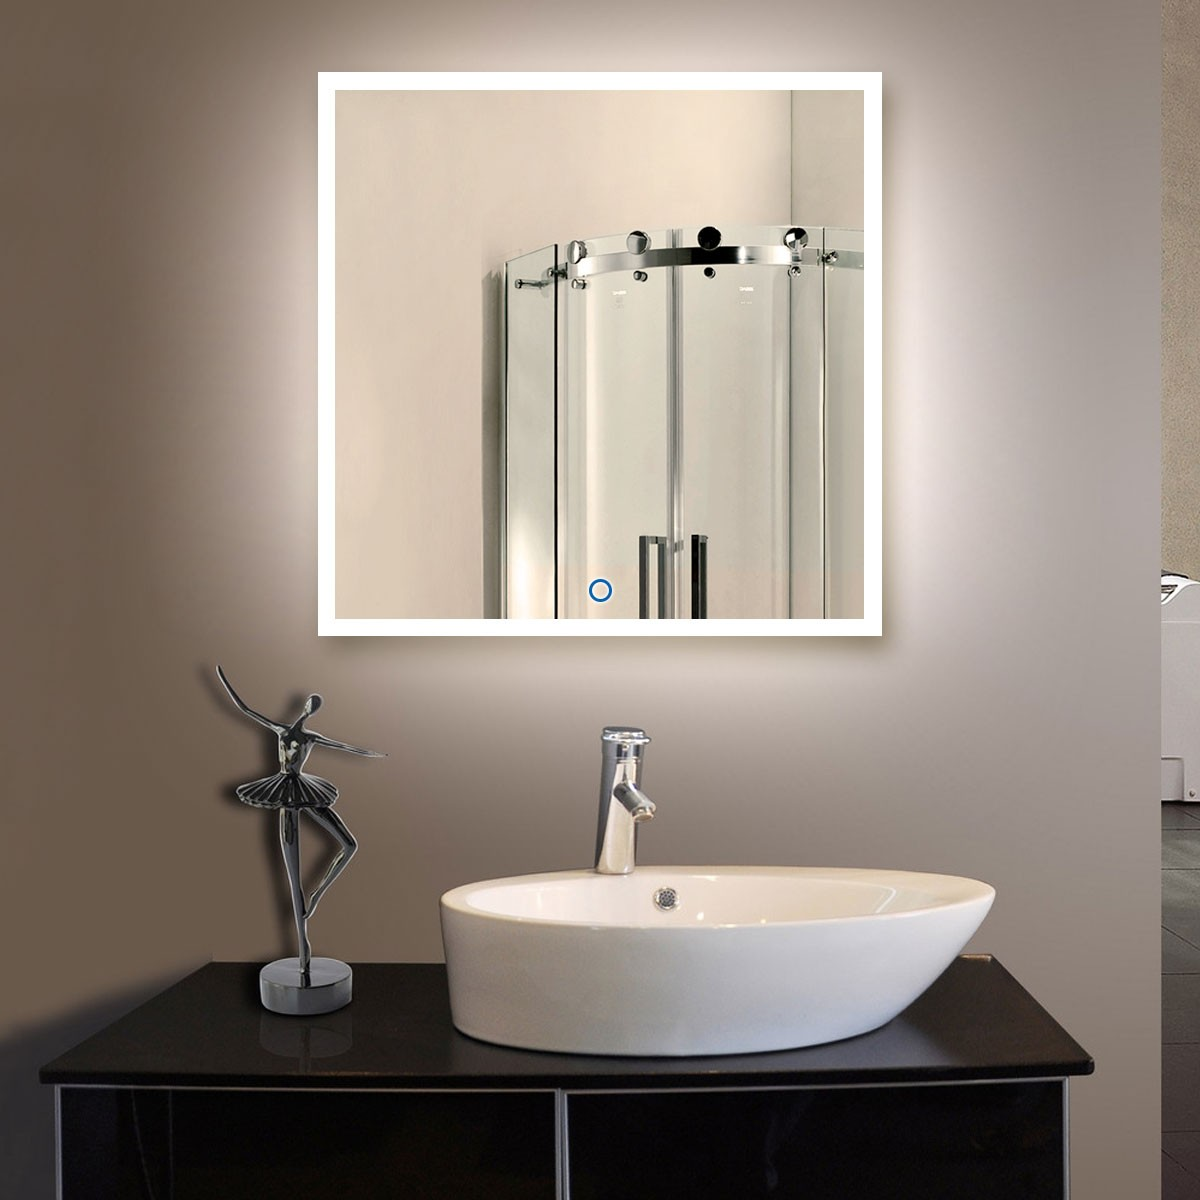 36 x 36 In and Vertical LED Bathroom Mirror with Touch Button (DK-OD-N031-E)